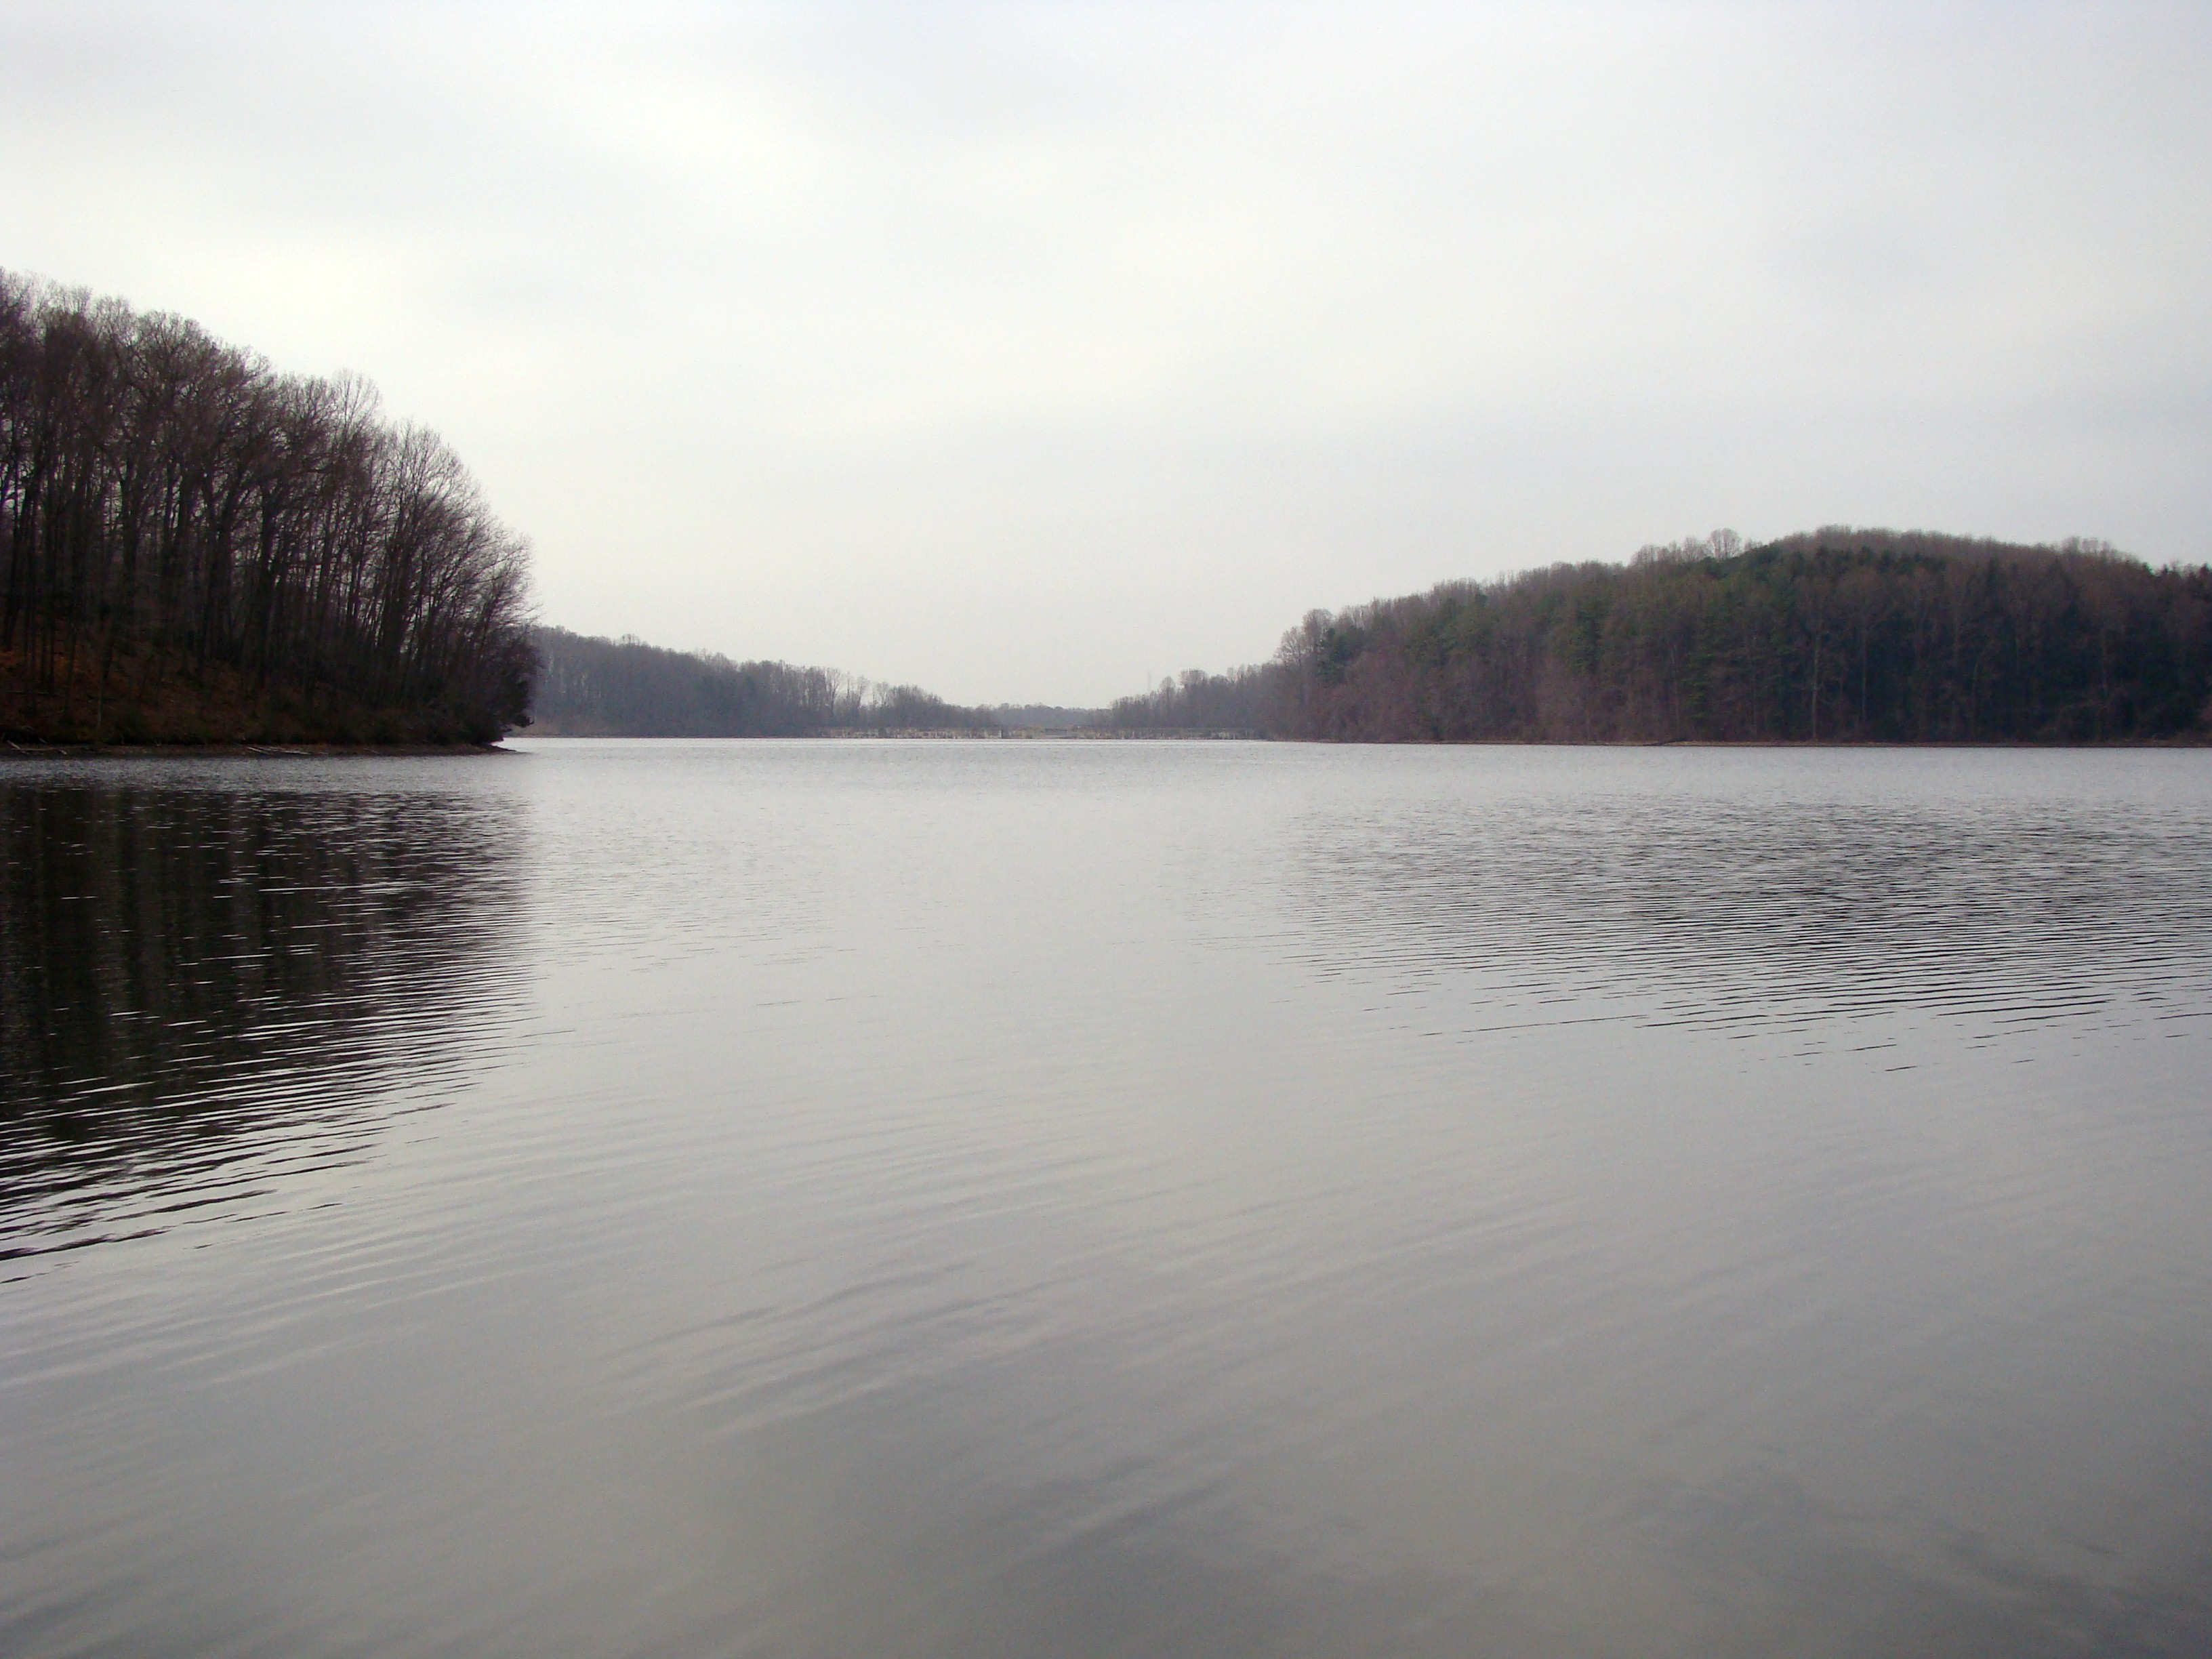 View along the banks of Hoopes Reservoir.